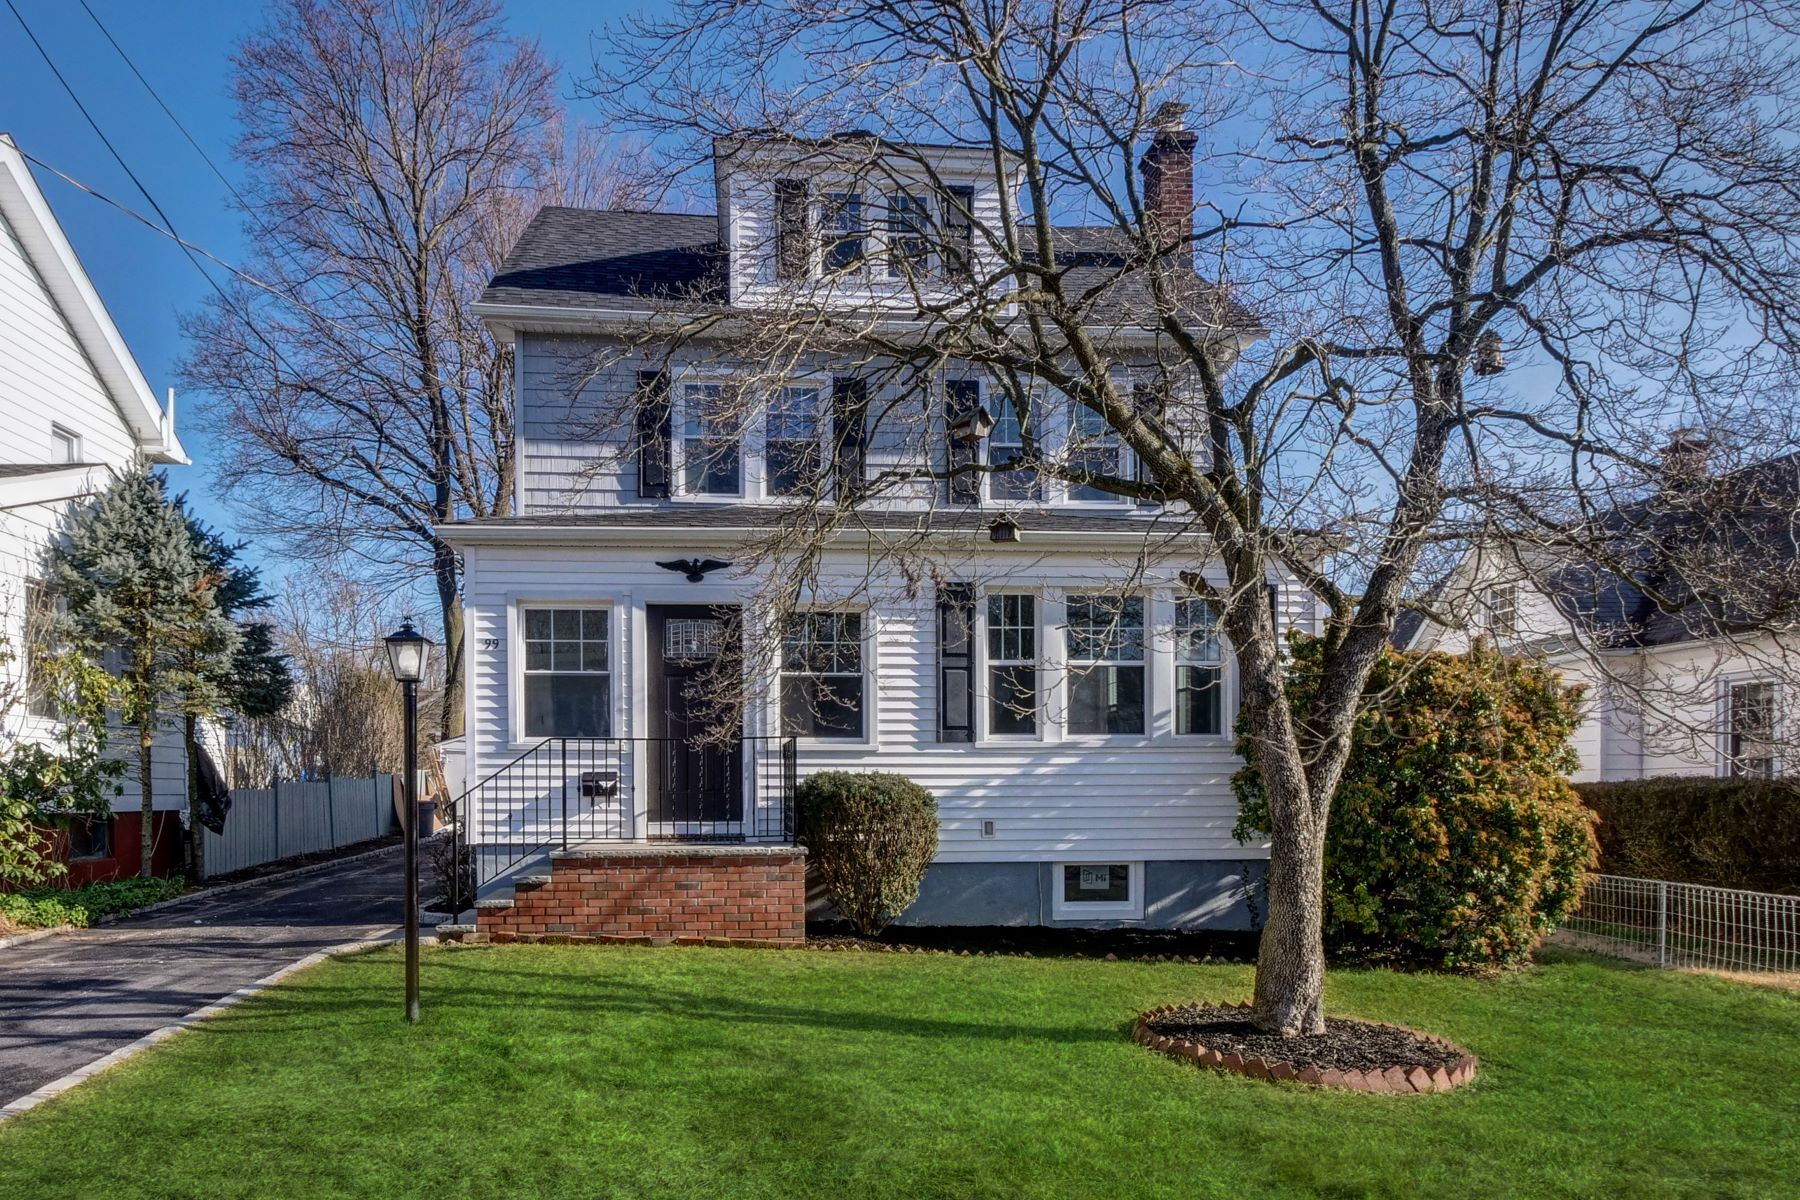 Single Family Homes for Sale at Craftsmanship Abounds 99 Burnham Road, Morris Plains, New Jersey 07950 United States